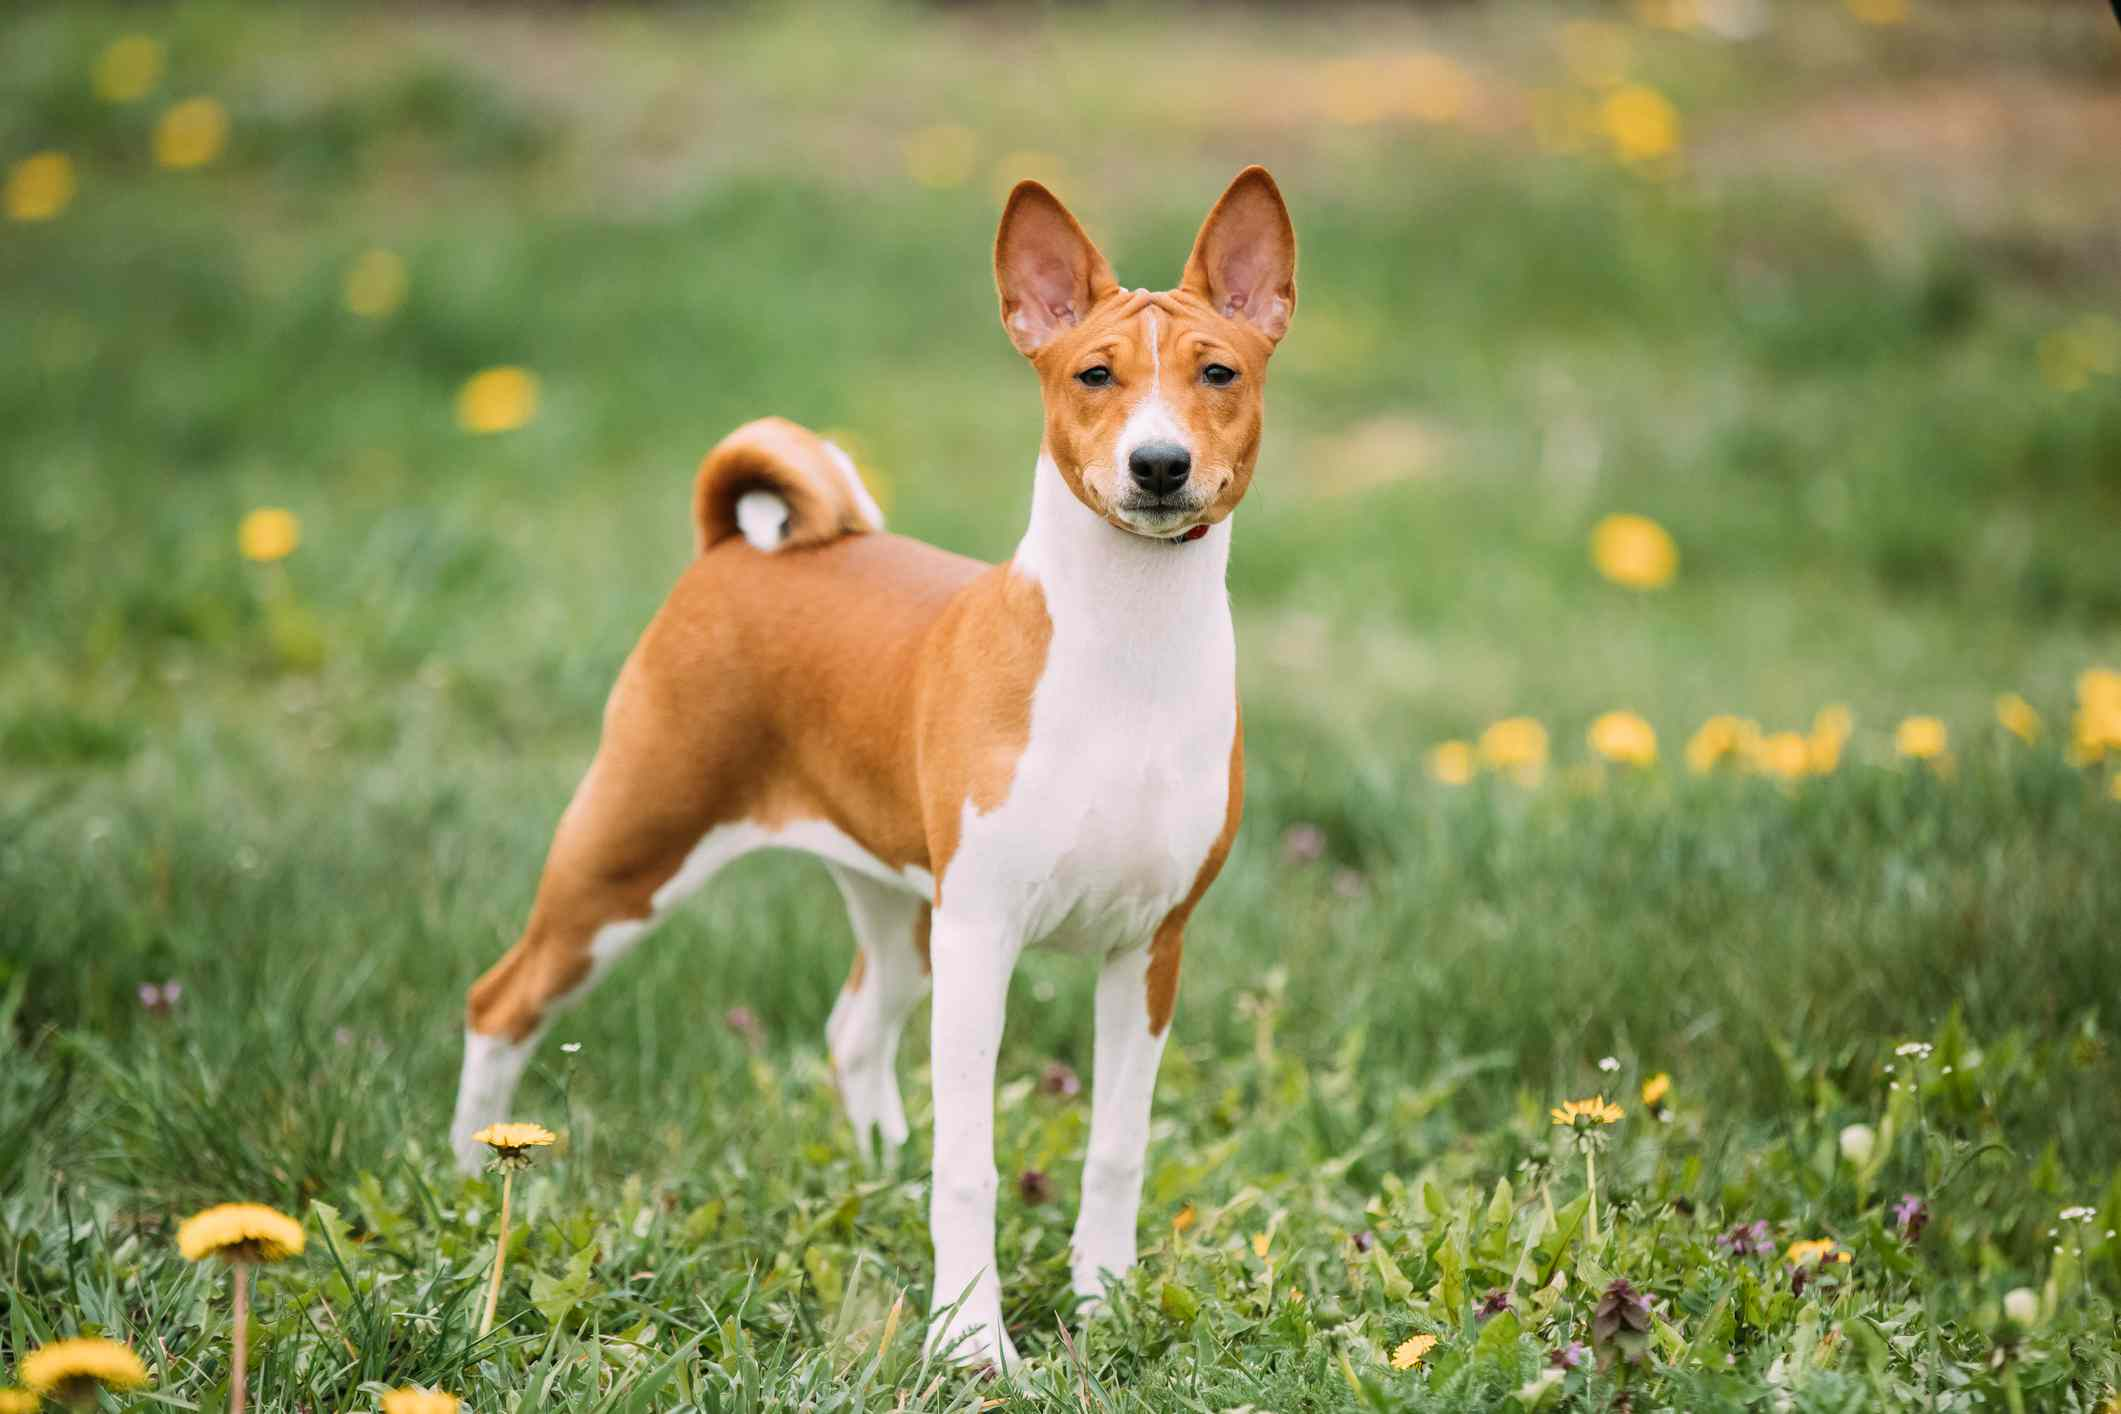 A red and white Basenji dog with perked ears and a curled tail standing in a field with dandelions and looking straight at the camera.